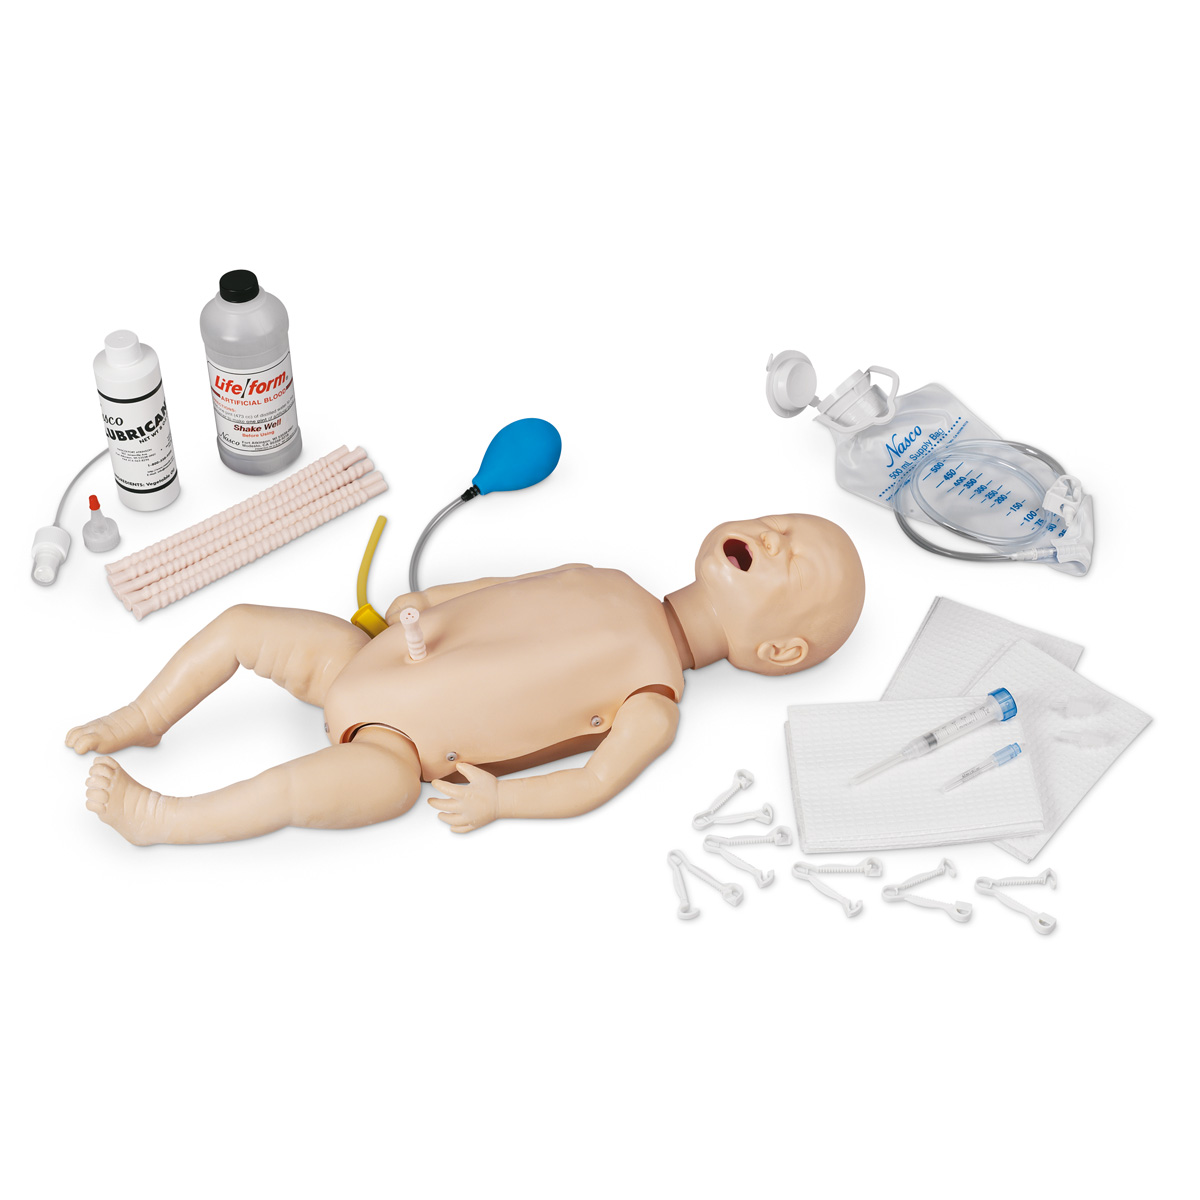 Basic Life/form® Infant Crisis Manikin - 1017248 - W44717 ...